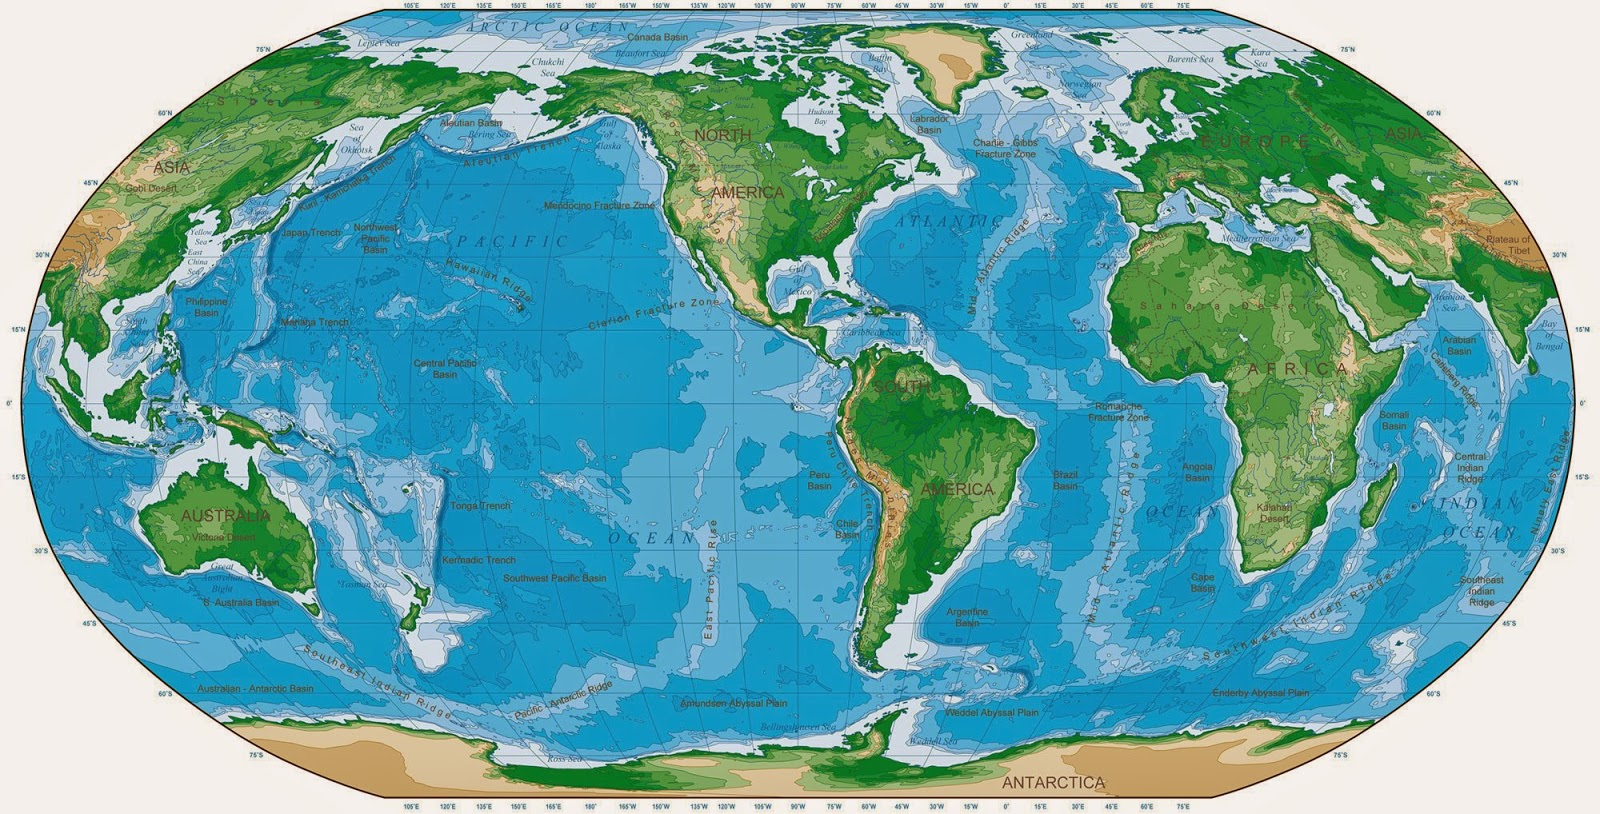 World Map Nile River - Nile river location on world map